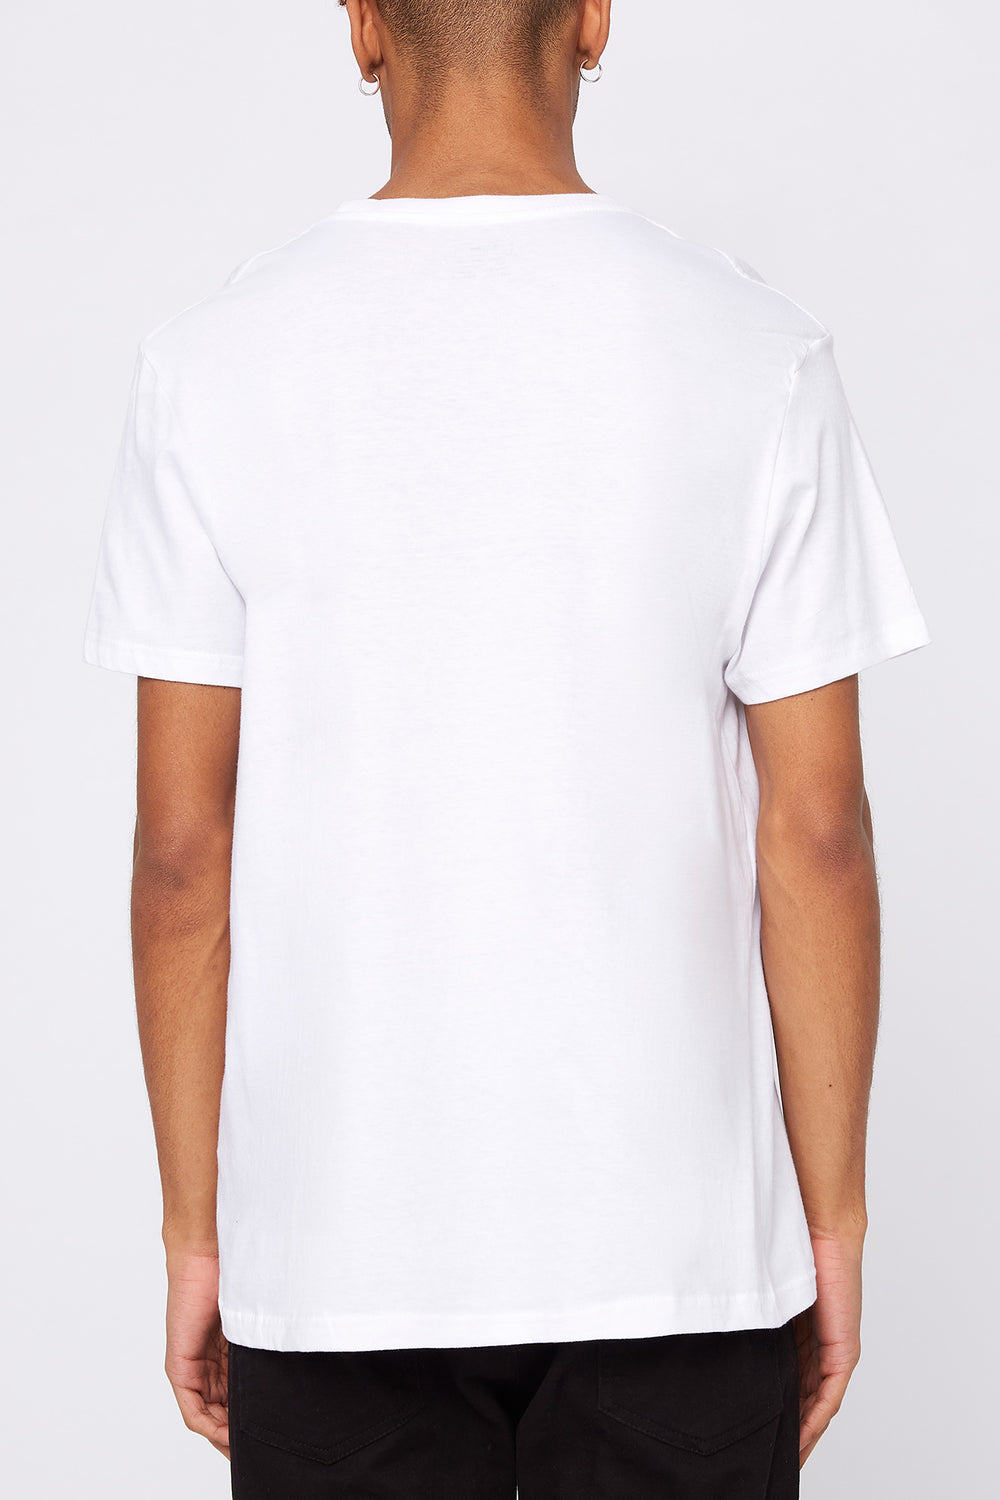 NASA Mens Graphic T-Shirt White